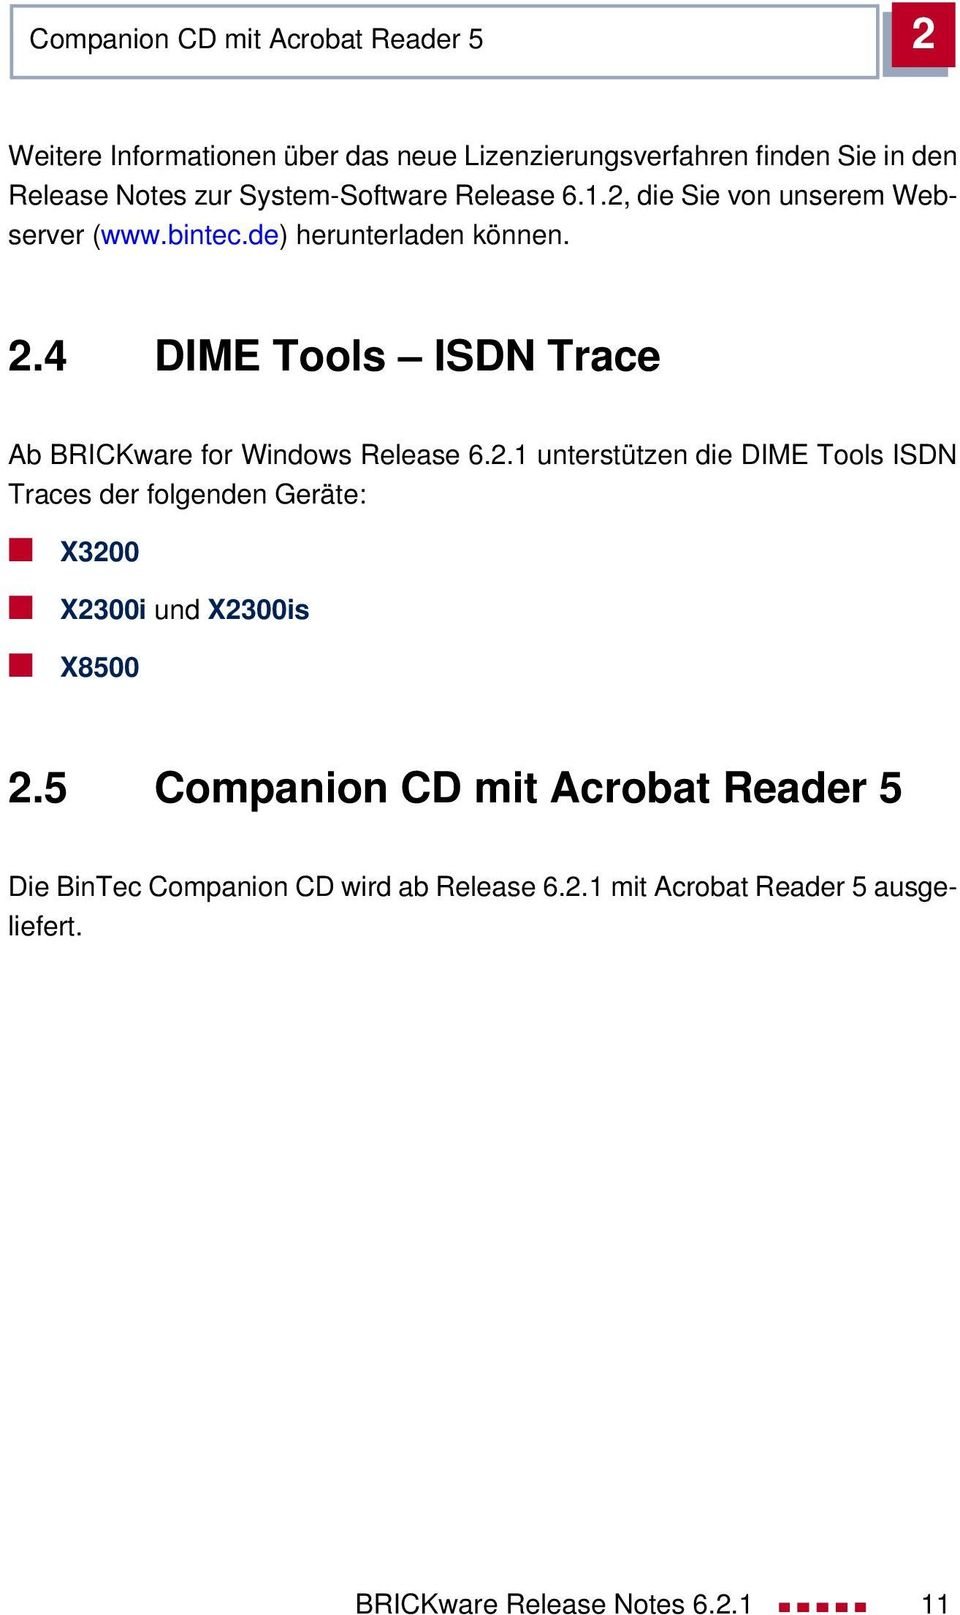 4 DIME Tools ISDN Trace Ab BRICKware for Windows Release 6.2.